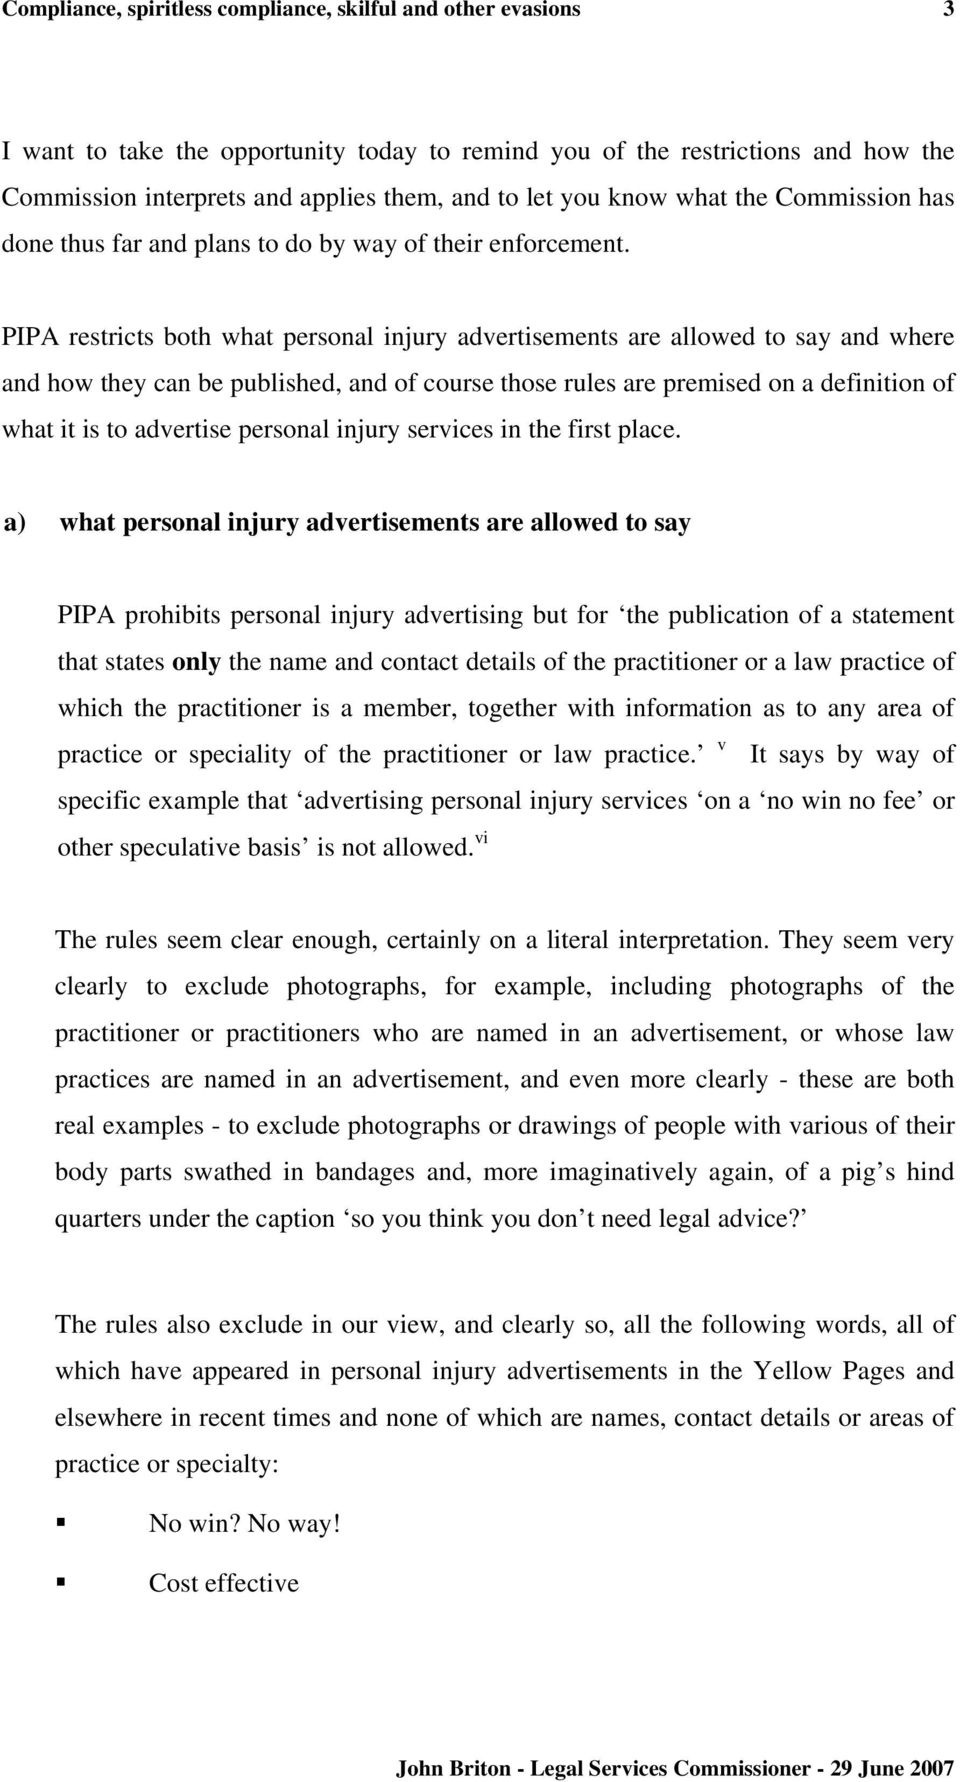 PIPA restricts both what personal injury advertisements are allowed to say and where and how they can be published, and of course those rules are premised on a definition of what it is to advertise